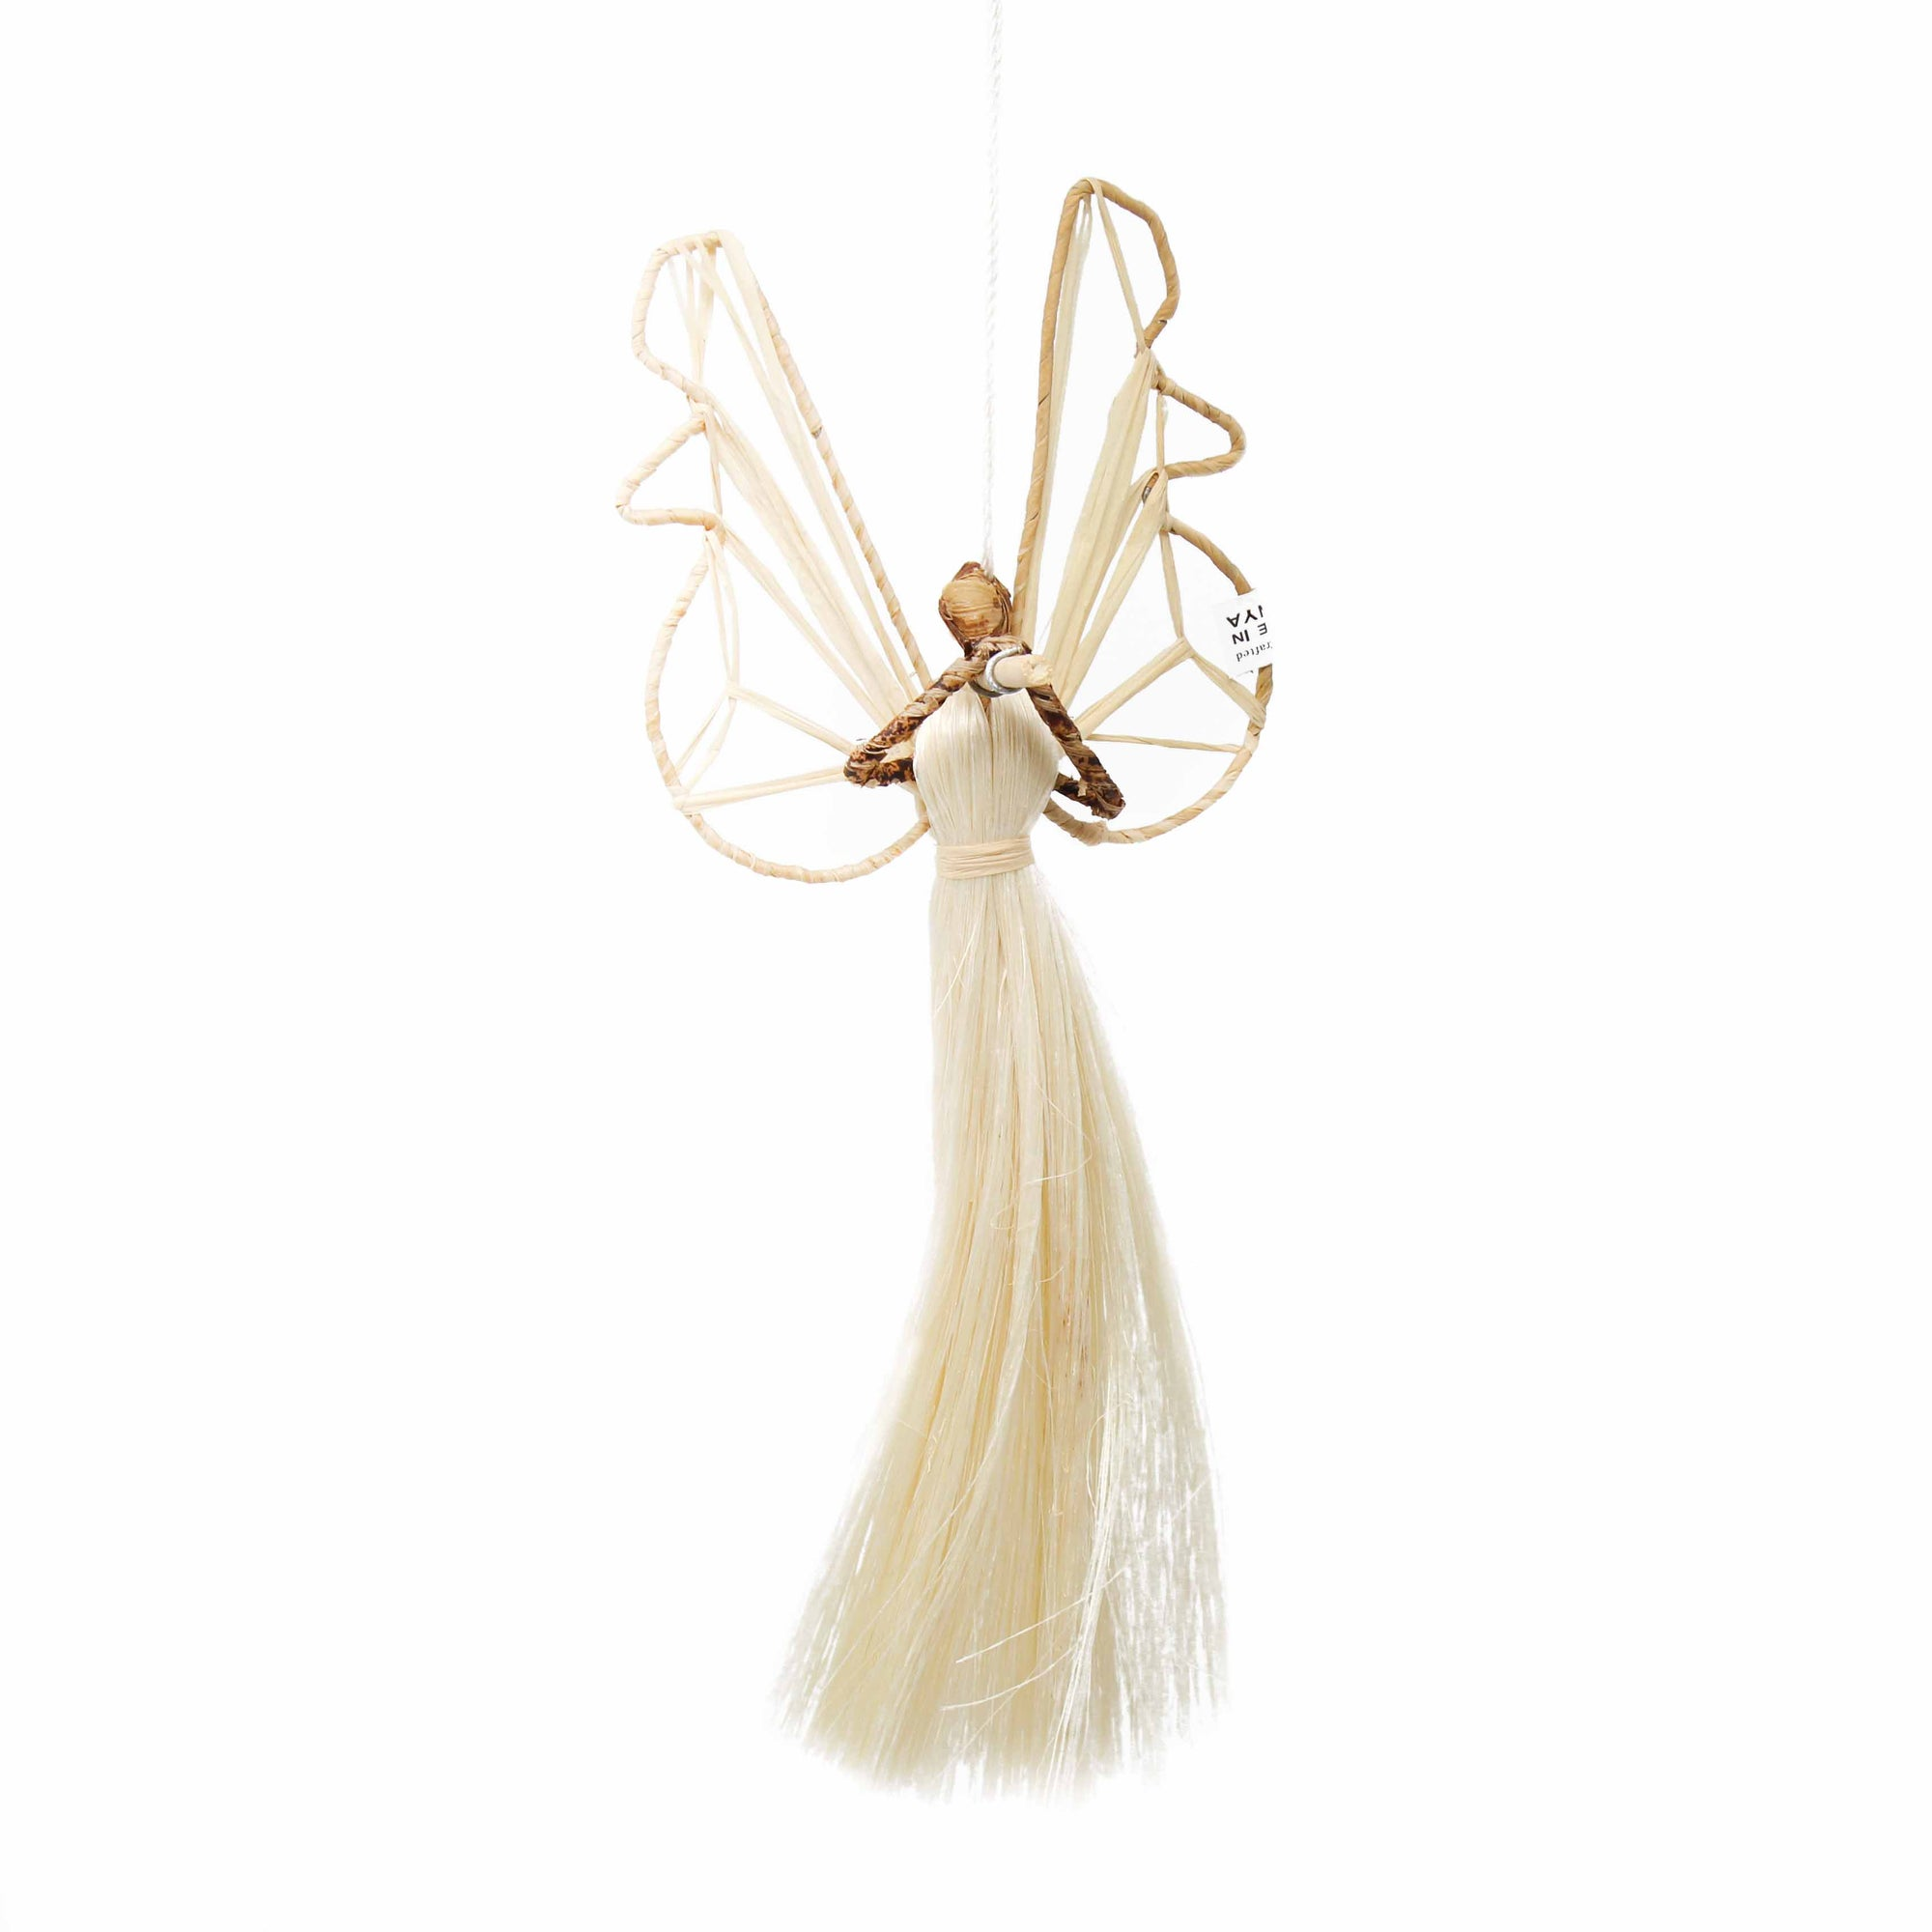 9 Inch Sisal Angel Ornament, Horn